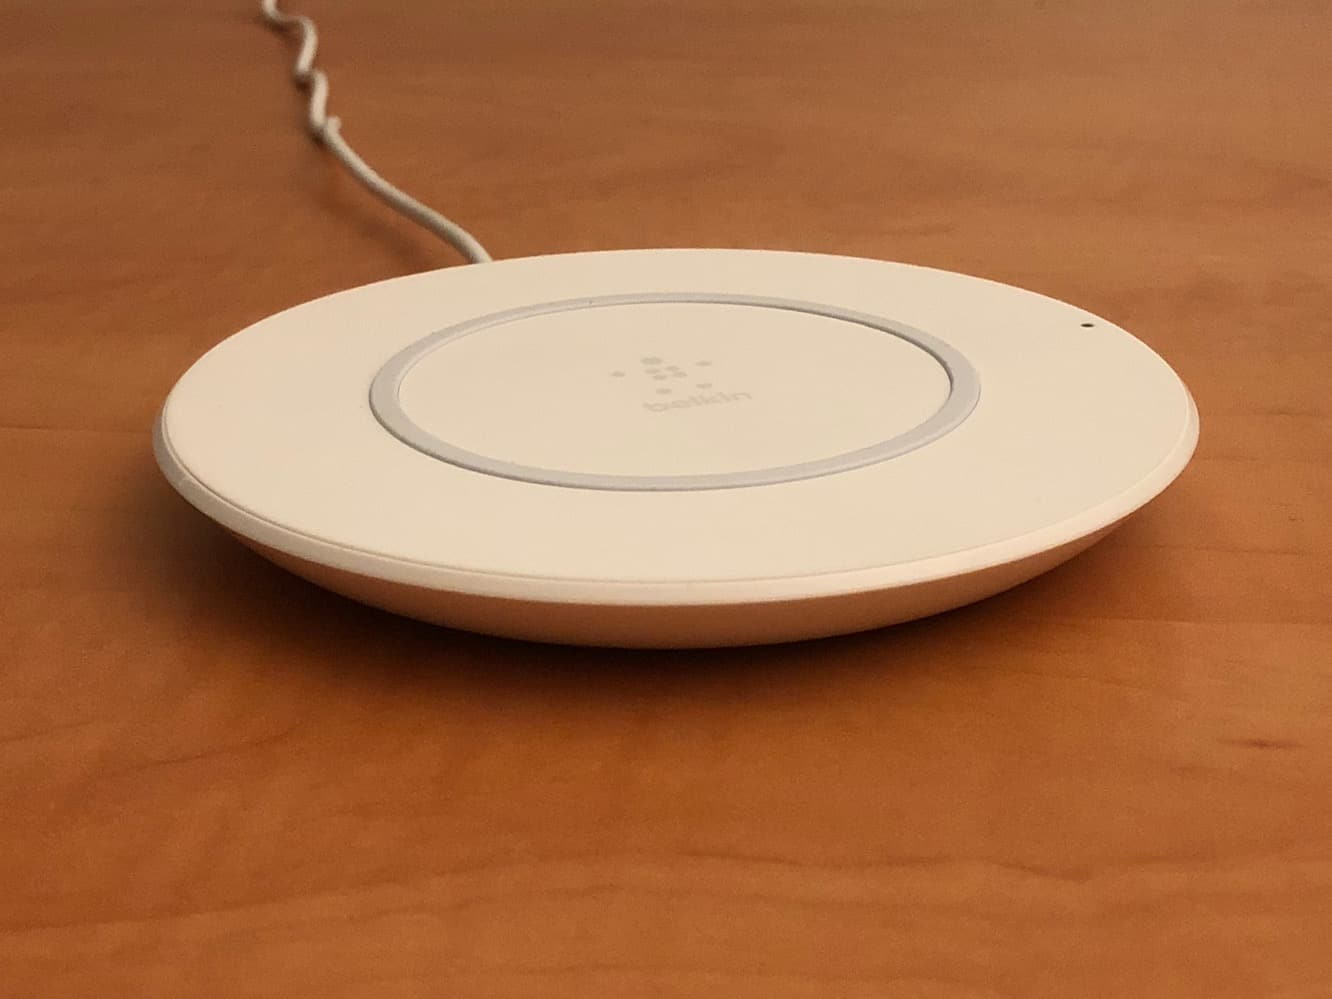 Review: Belkin Boost Up Wireless Charging Pad